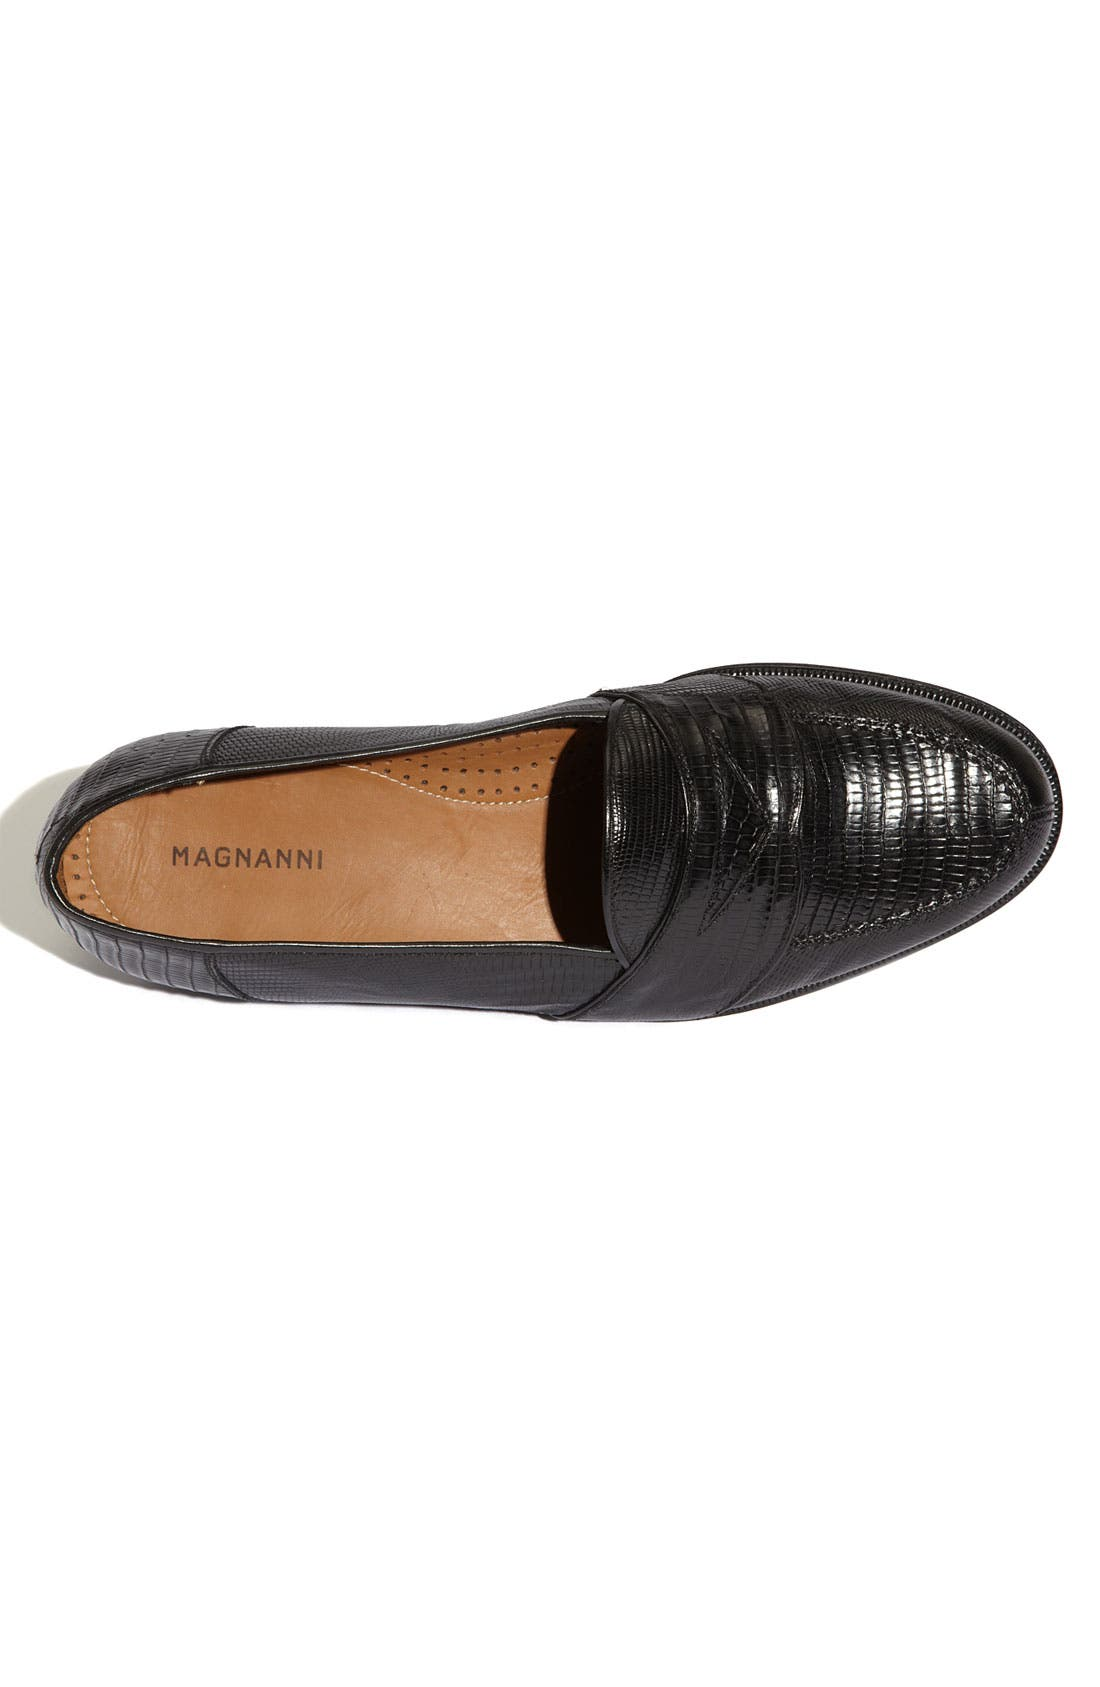 Alternate Image 3  - Magnanni 'Raul' Lizard Loafer